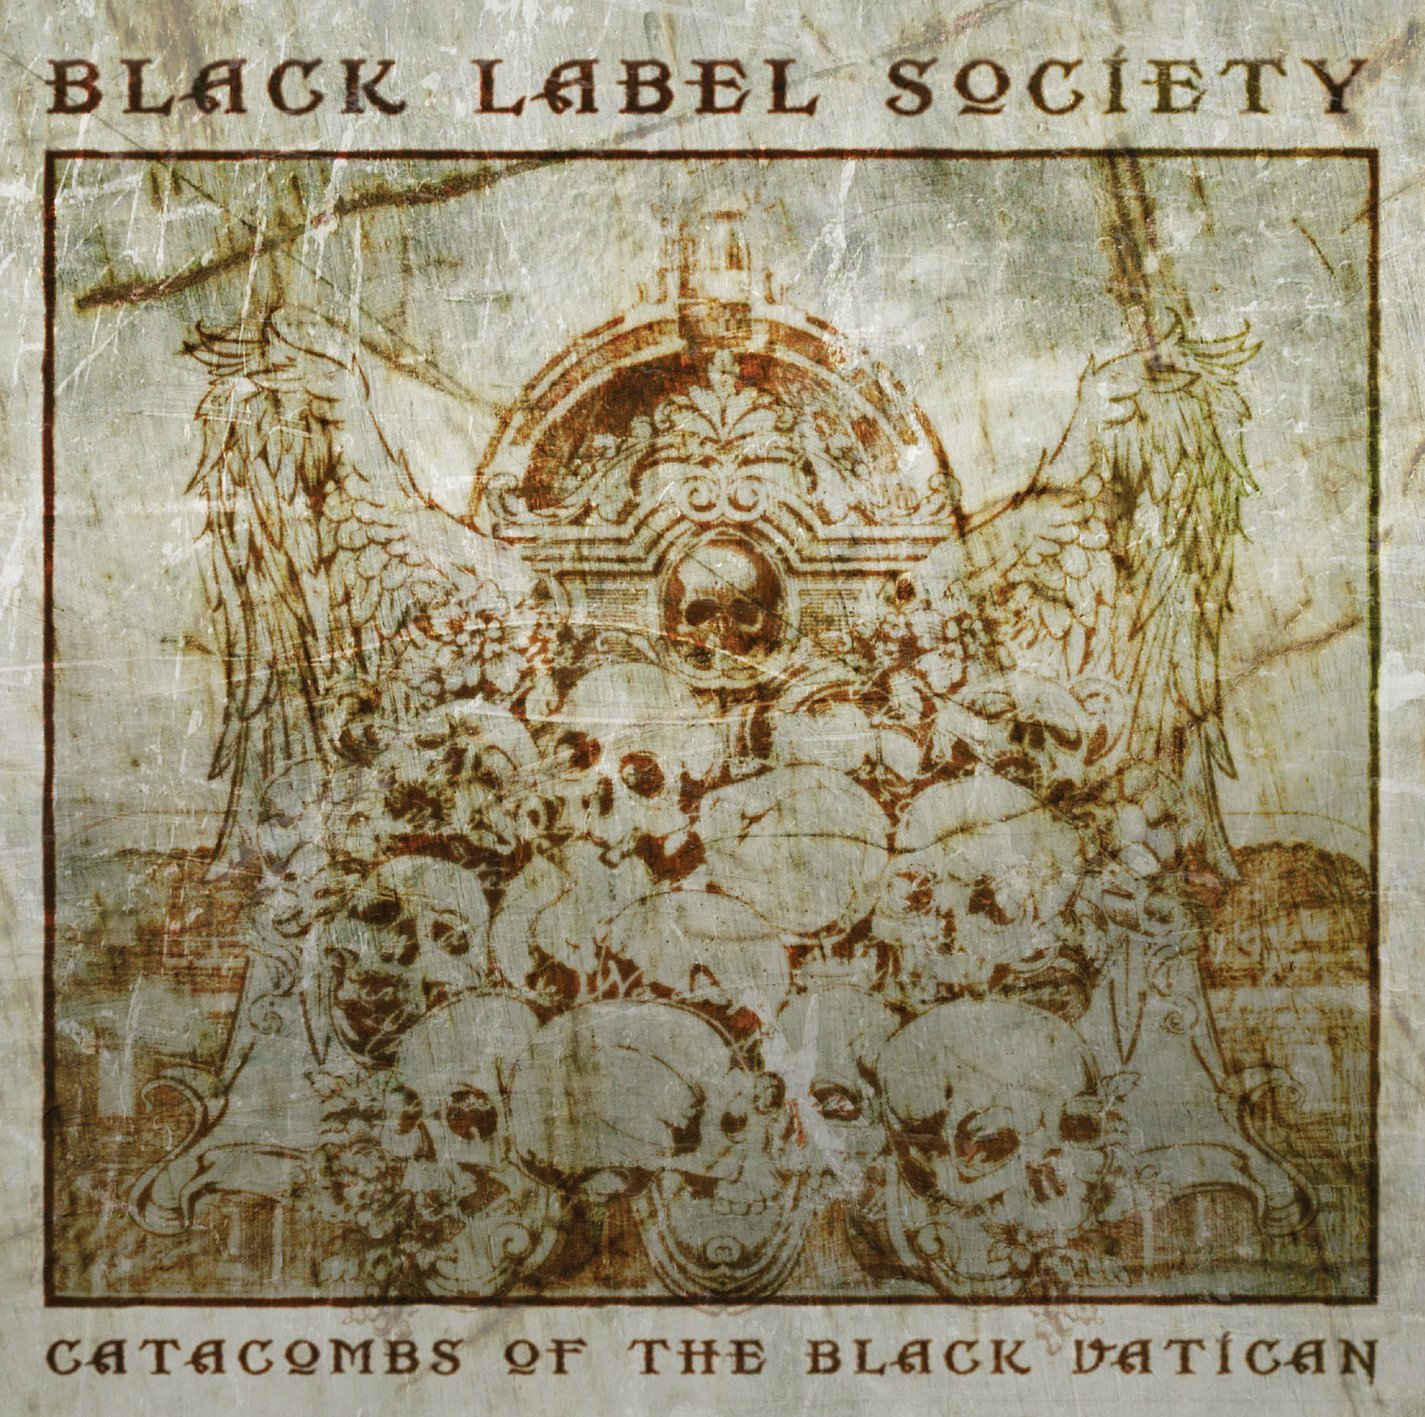 09. Black Label Society CATACOMBS OF THE BLACK VATICAN